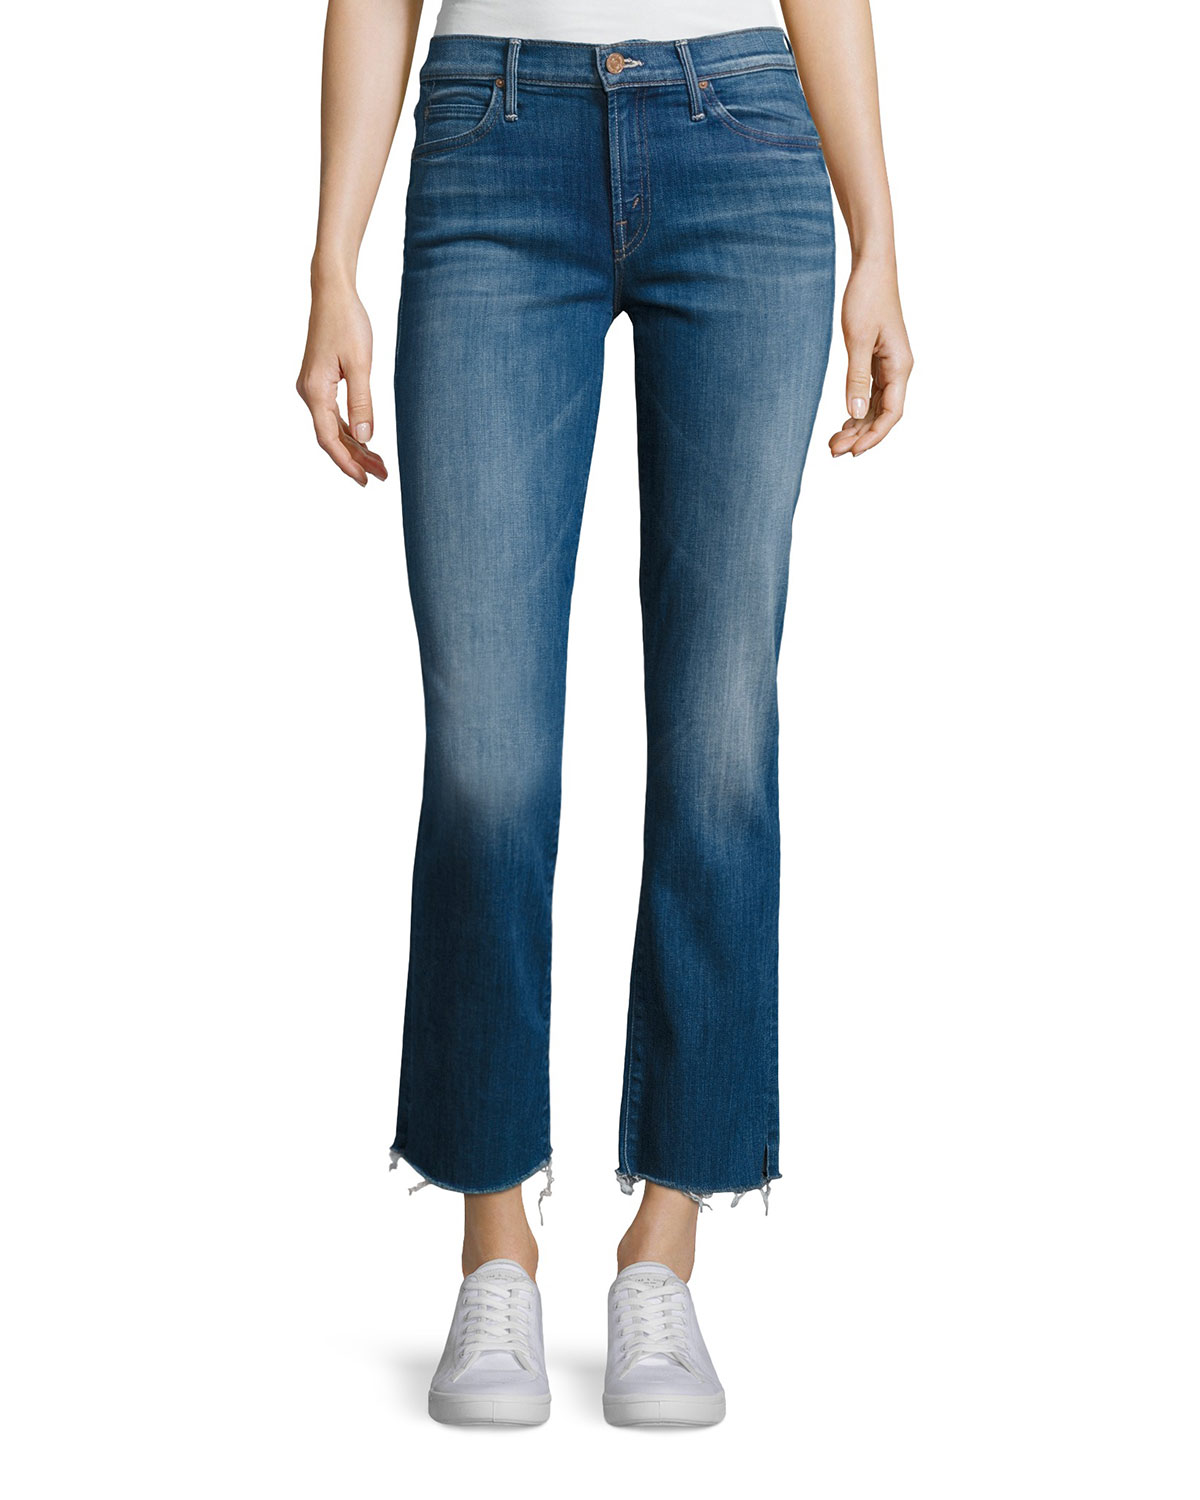 2fee7e72c3c6b Mother Rascal Ankle Snippet Denim Jeans